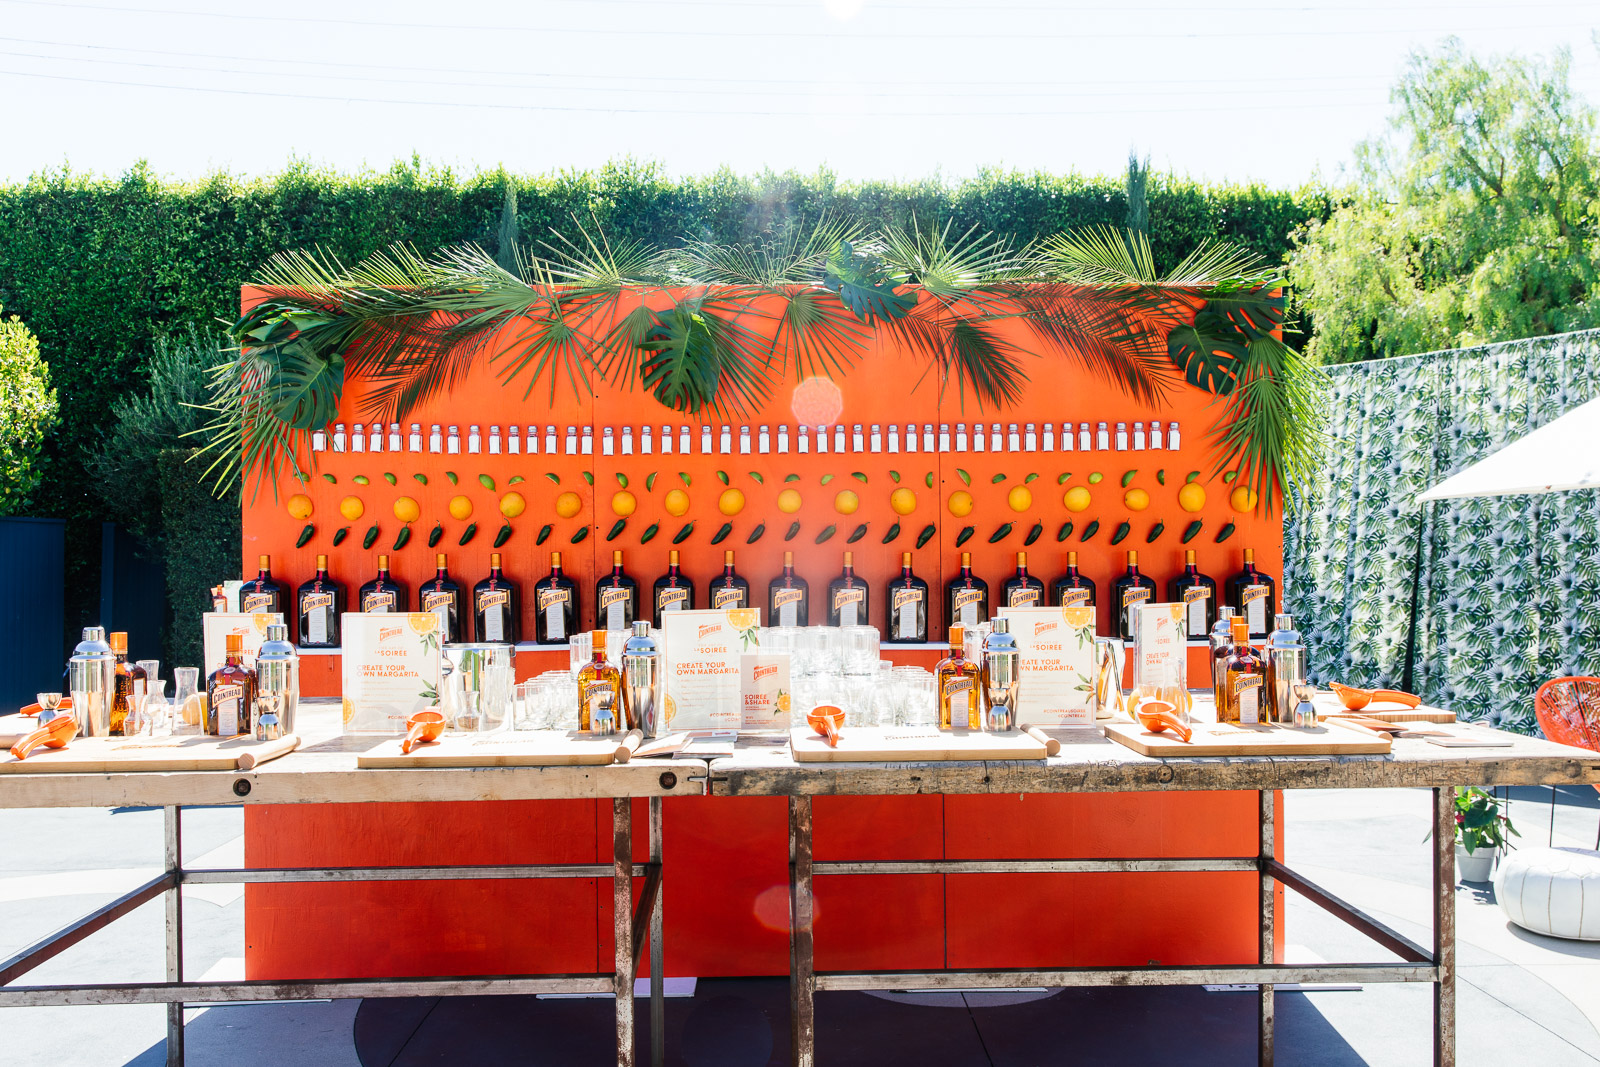 boomerang-photo-booth-cointreau-fig-house-los-angeles-0541